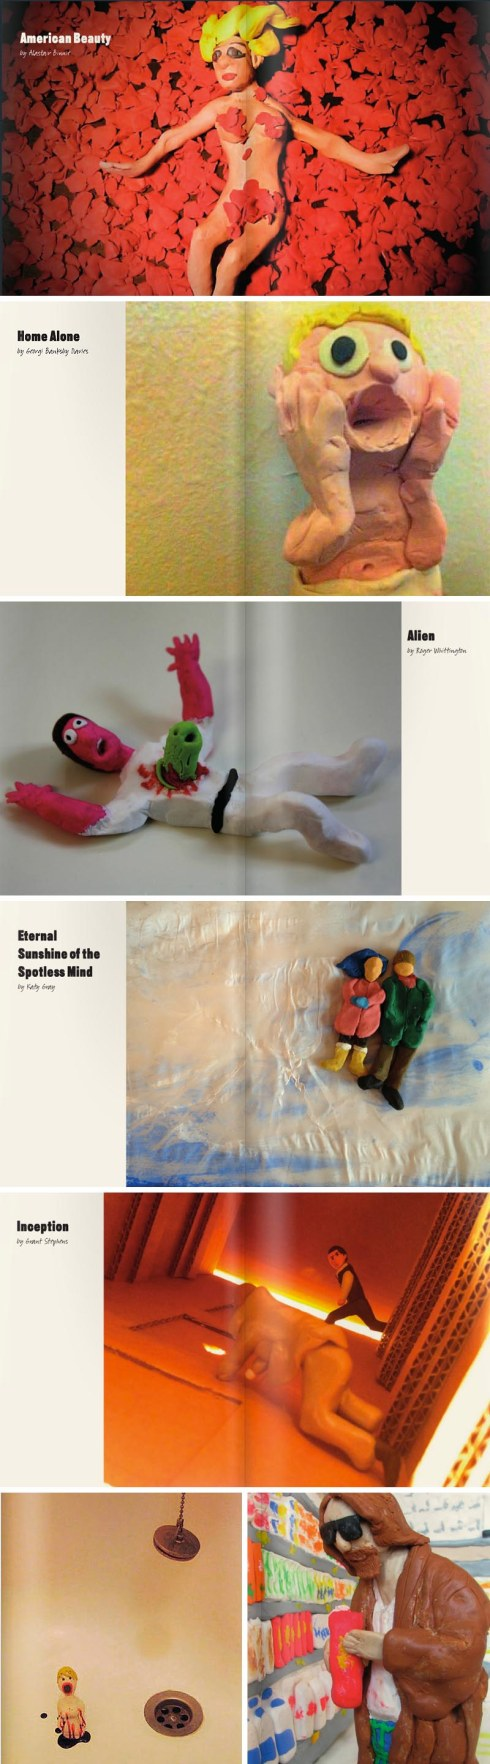 movie scenes made out of plasticine, modelling clay, casino